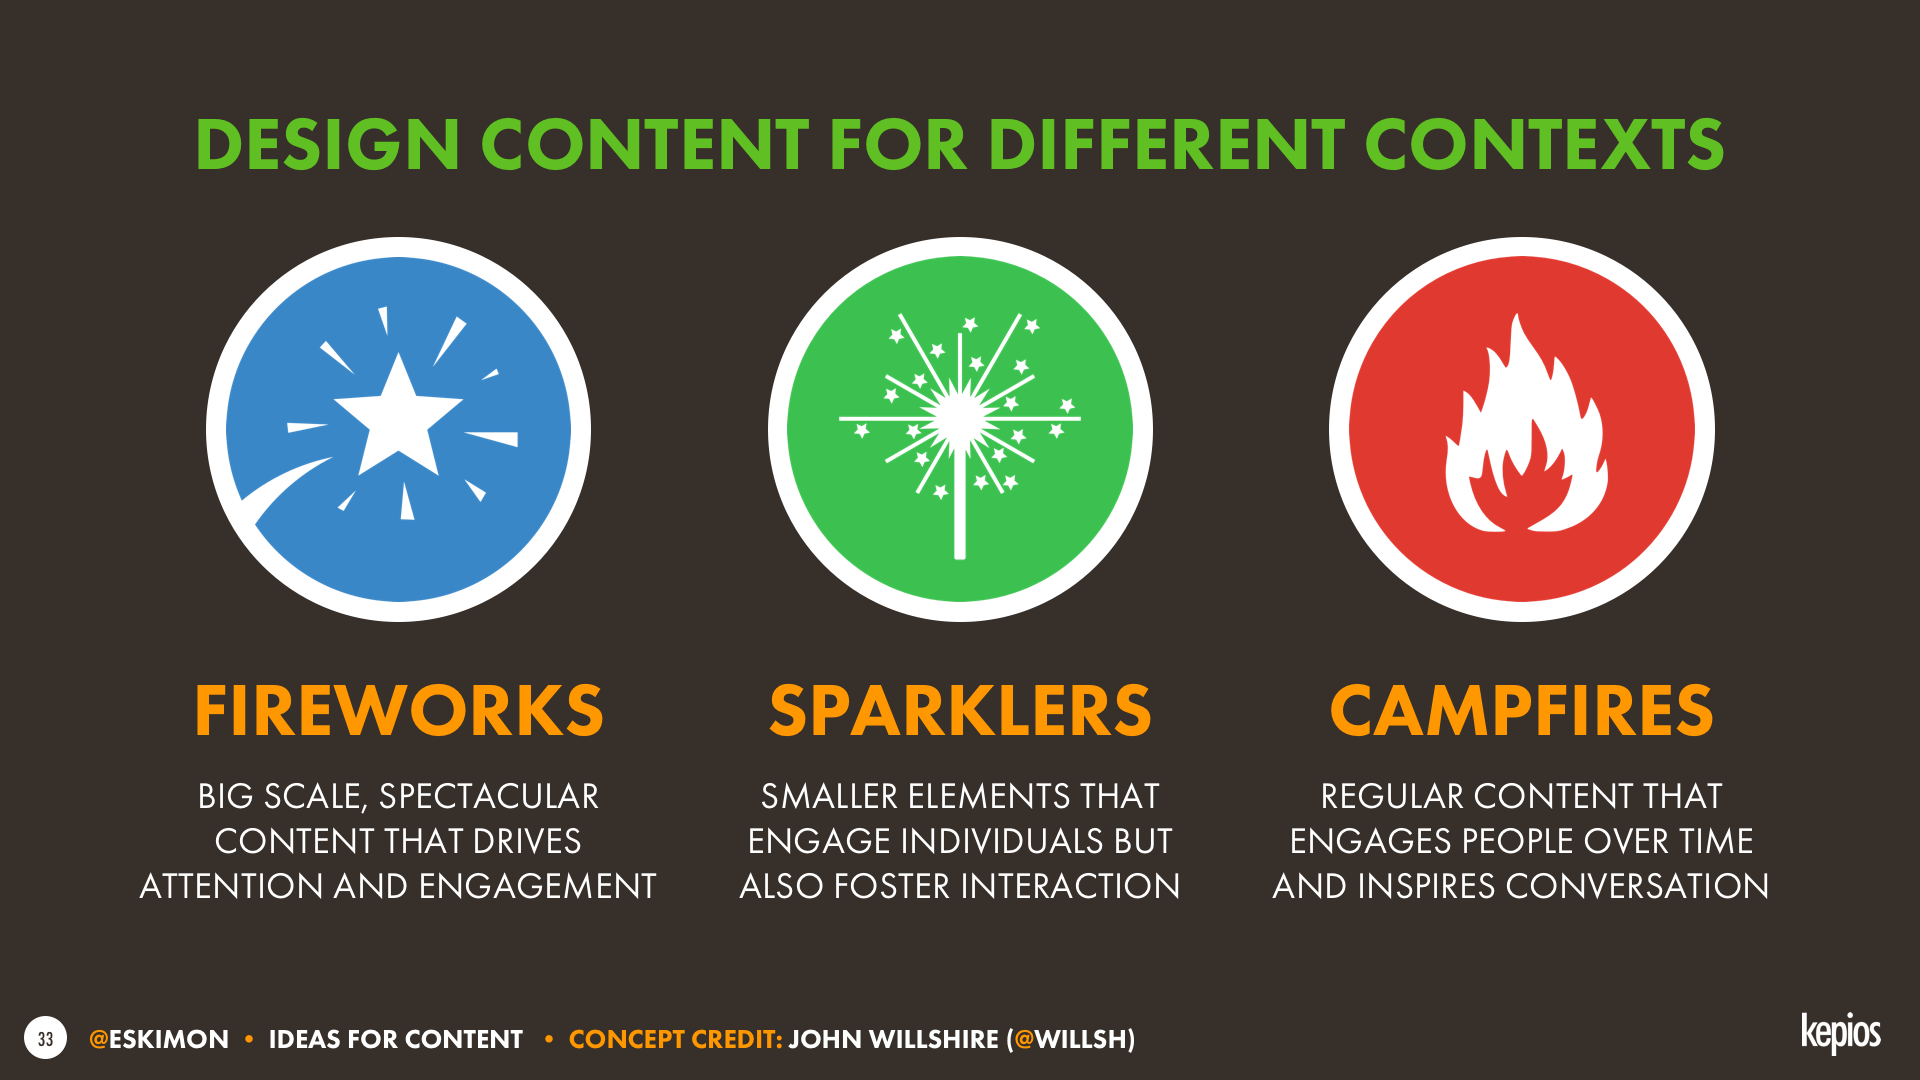 Content complexity: fireworks, sparklers and campfires